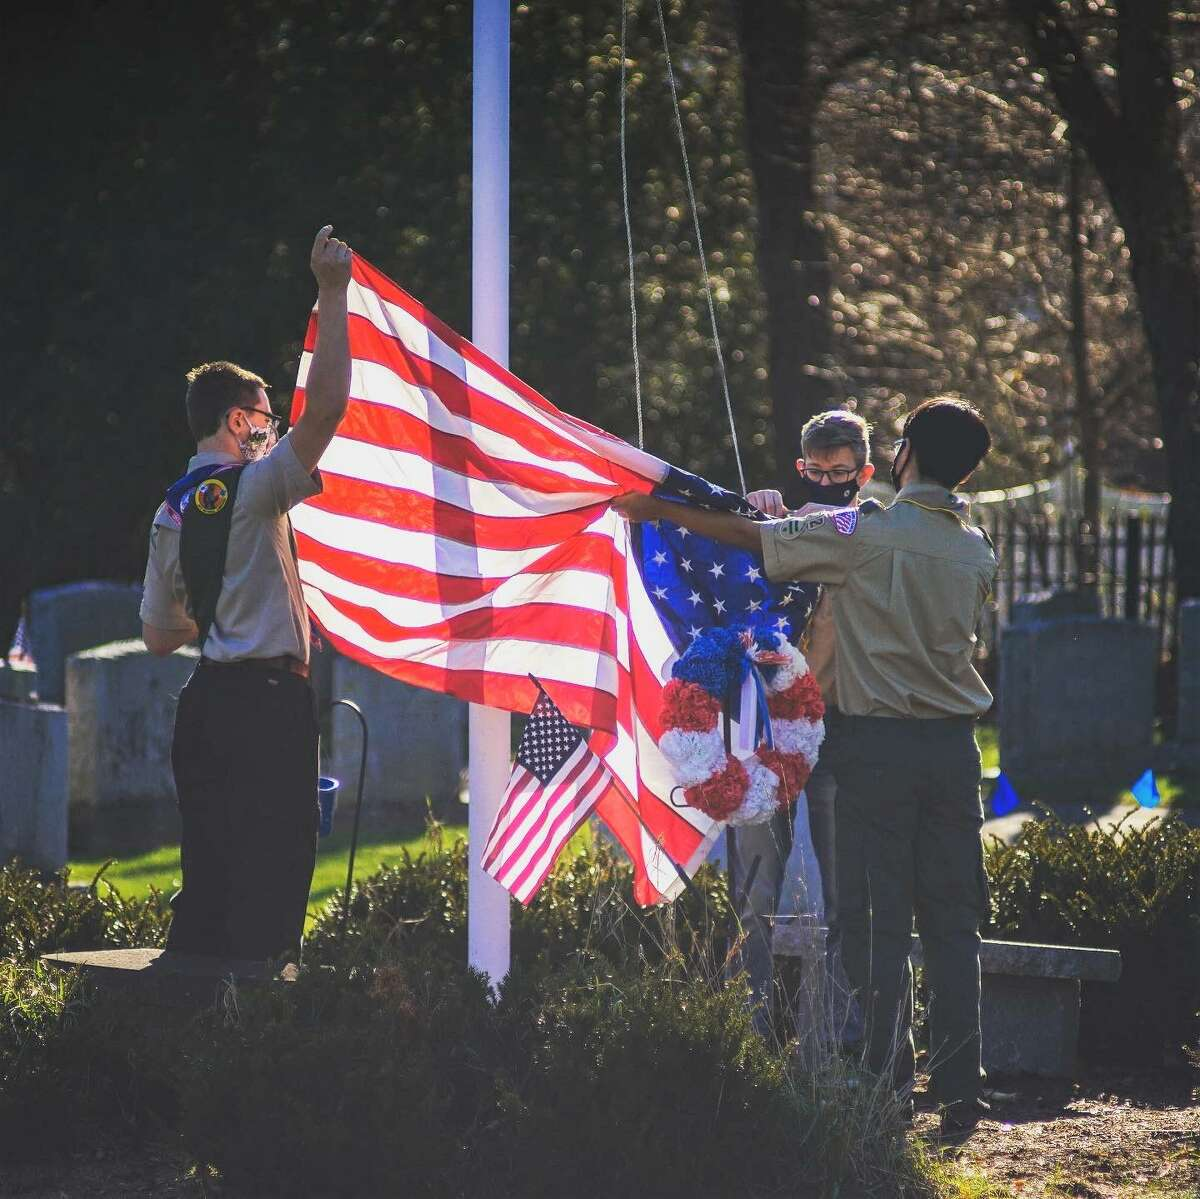 Middletown High School senior Nathan Robillard, 17, of Scout Troop 72, completed his Eagle Scout project over the weekend. Nearly 30 volunteers helped him catalog more than 700 graves at the Adath Israel Cemetery on Pine Street.